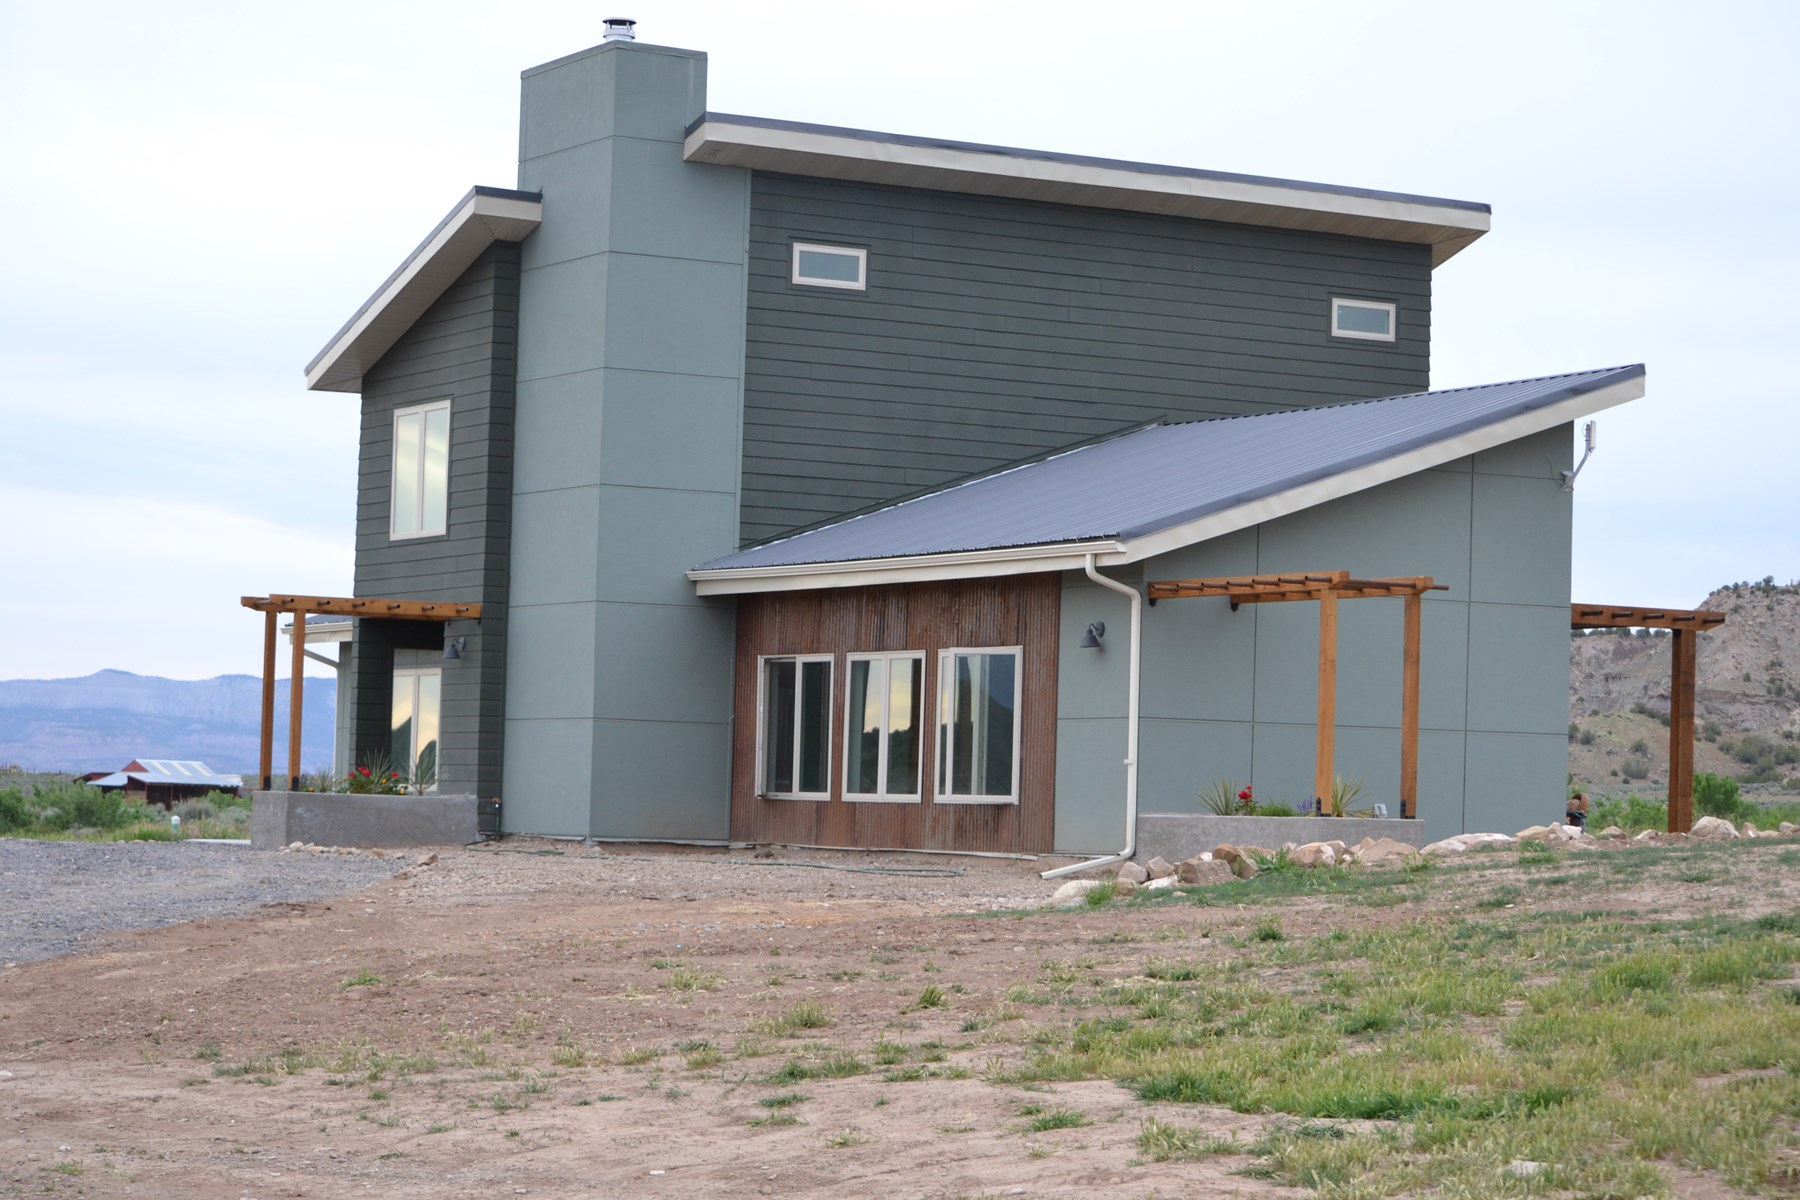 Green Built Home, Boarders Public Land For Sale in Colorado